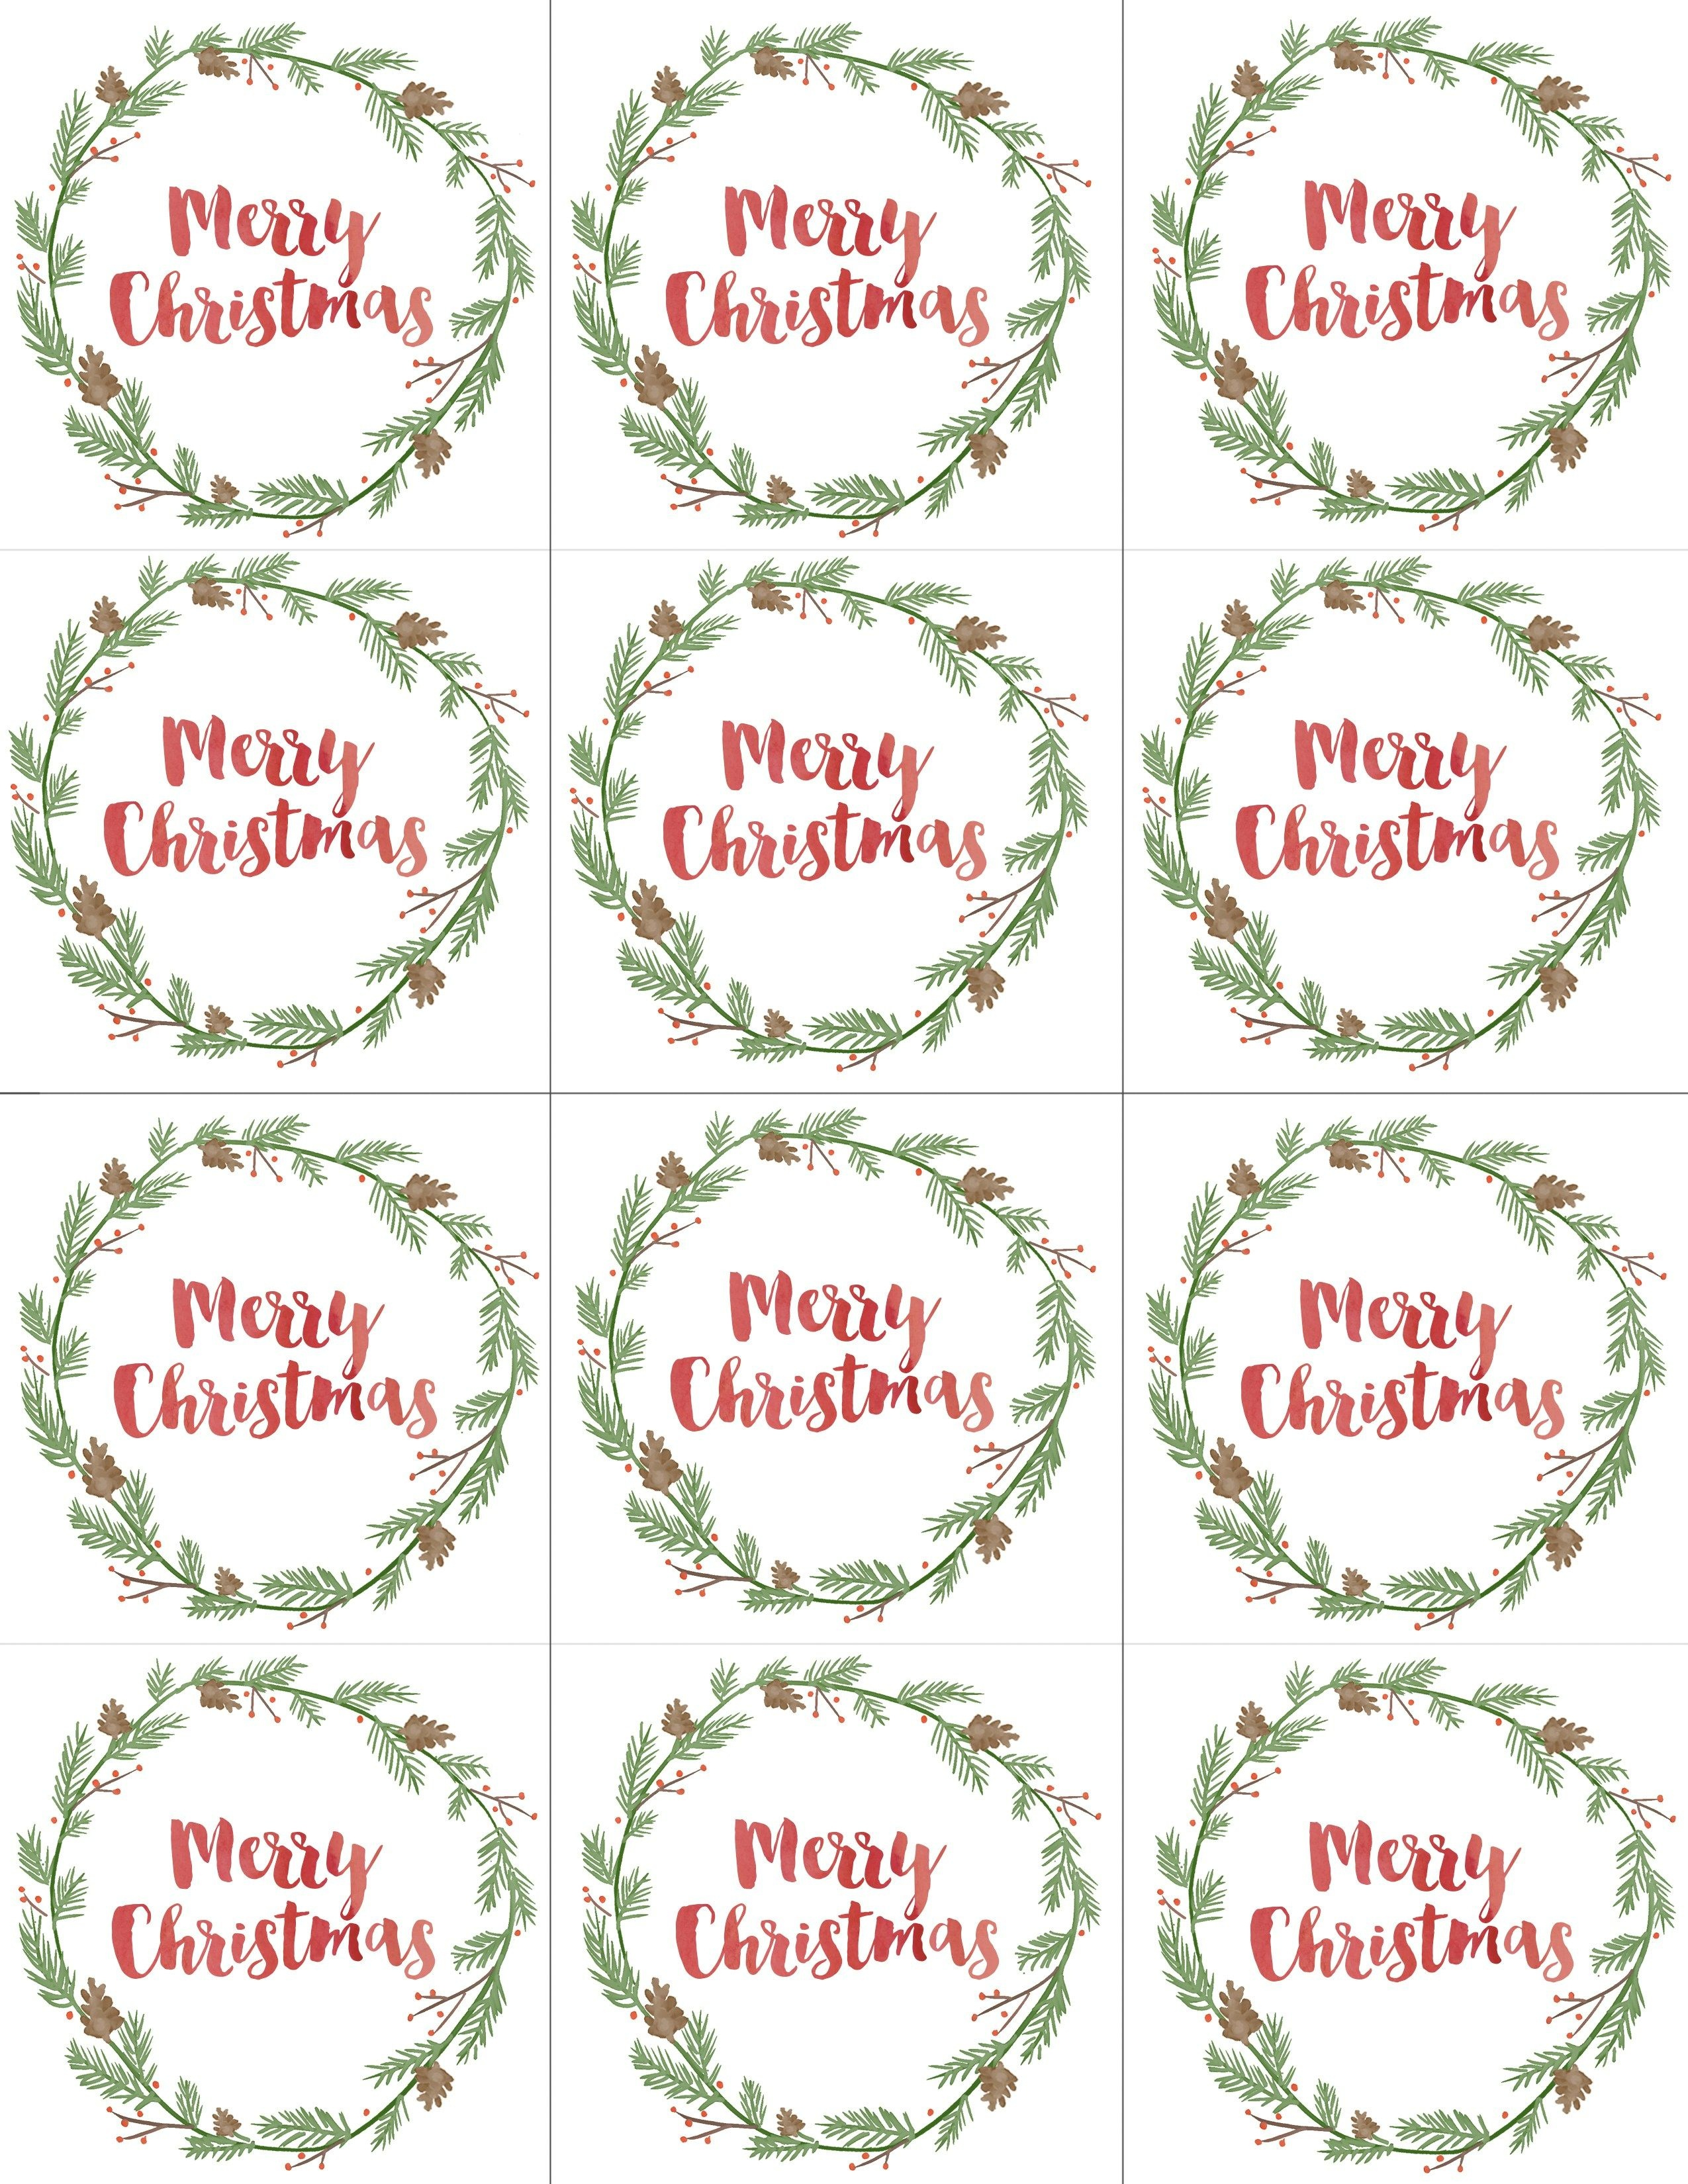 Hand Painted Gift Tags Free Printable | Christmas | Christmas Gift - Free Printable Christmas Tags